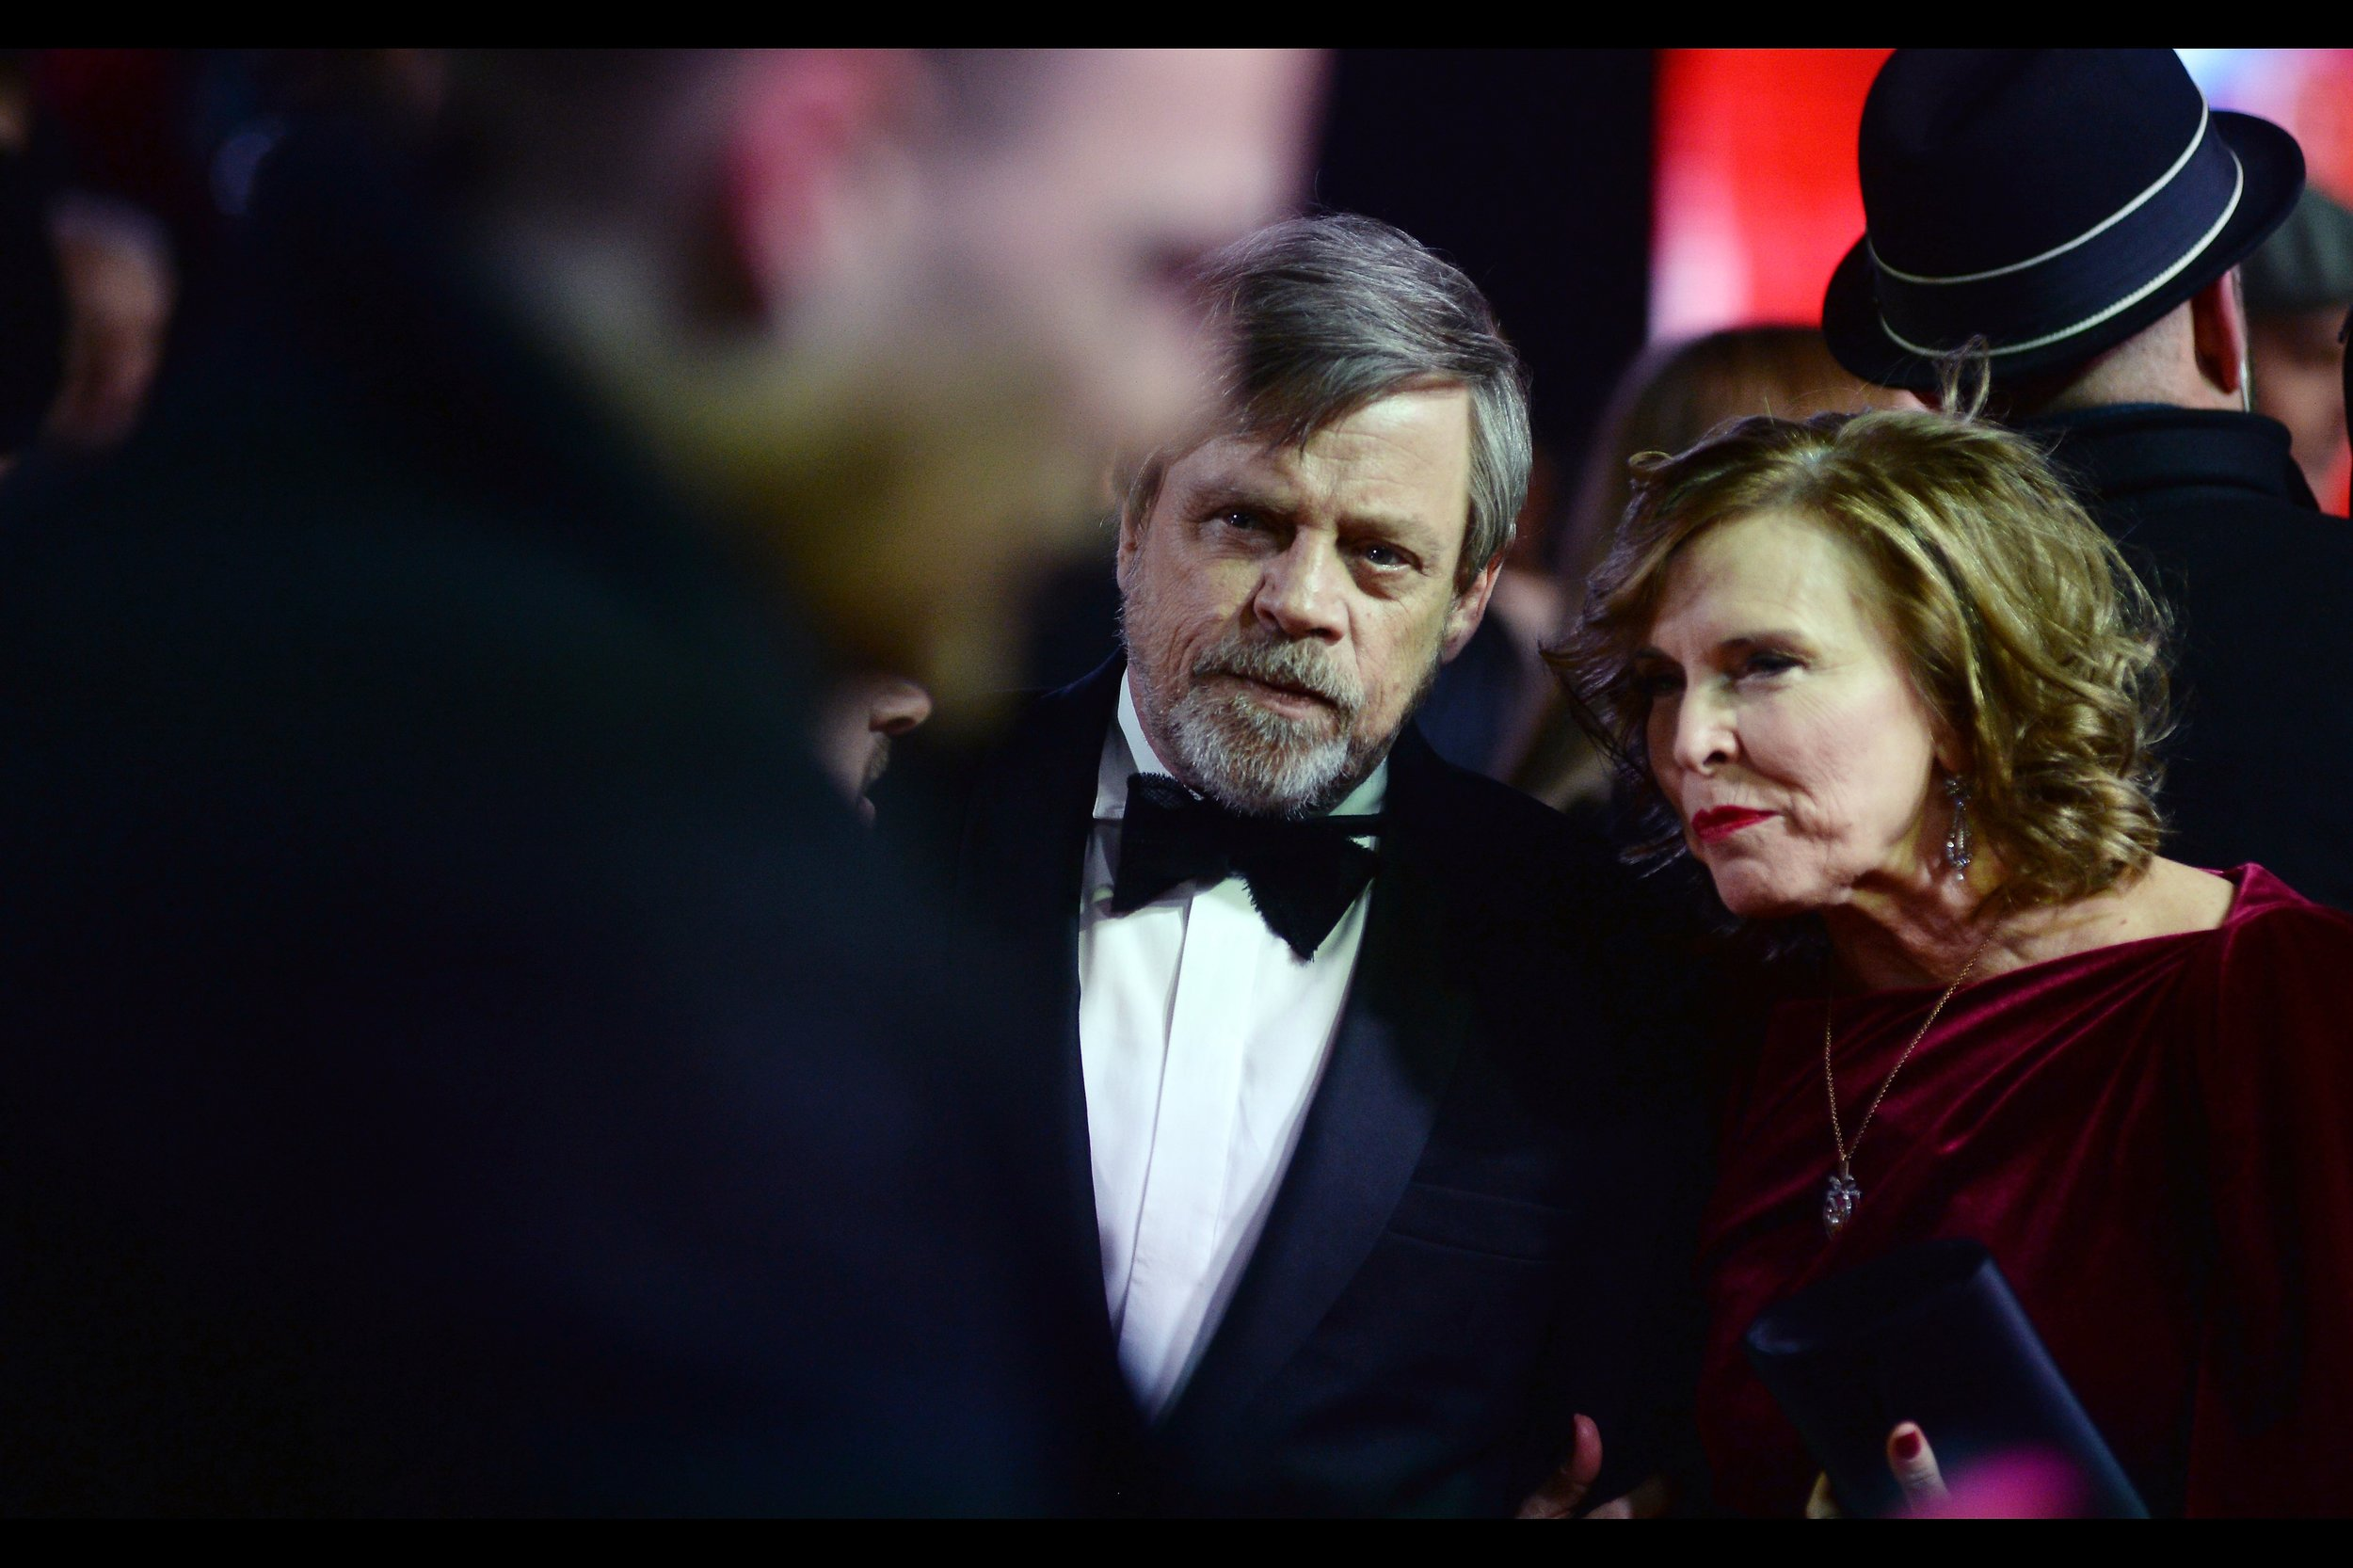 The challenge of getting eye-contact with Mark Hamill continues to dominate my activities, and it's also beneficially distracting me from the cold. I'm quite layered up (thanks for asking!) but it's still only about 2 to 3 degrees celsius in London this evening.